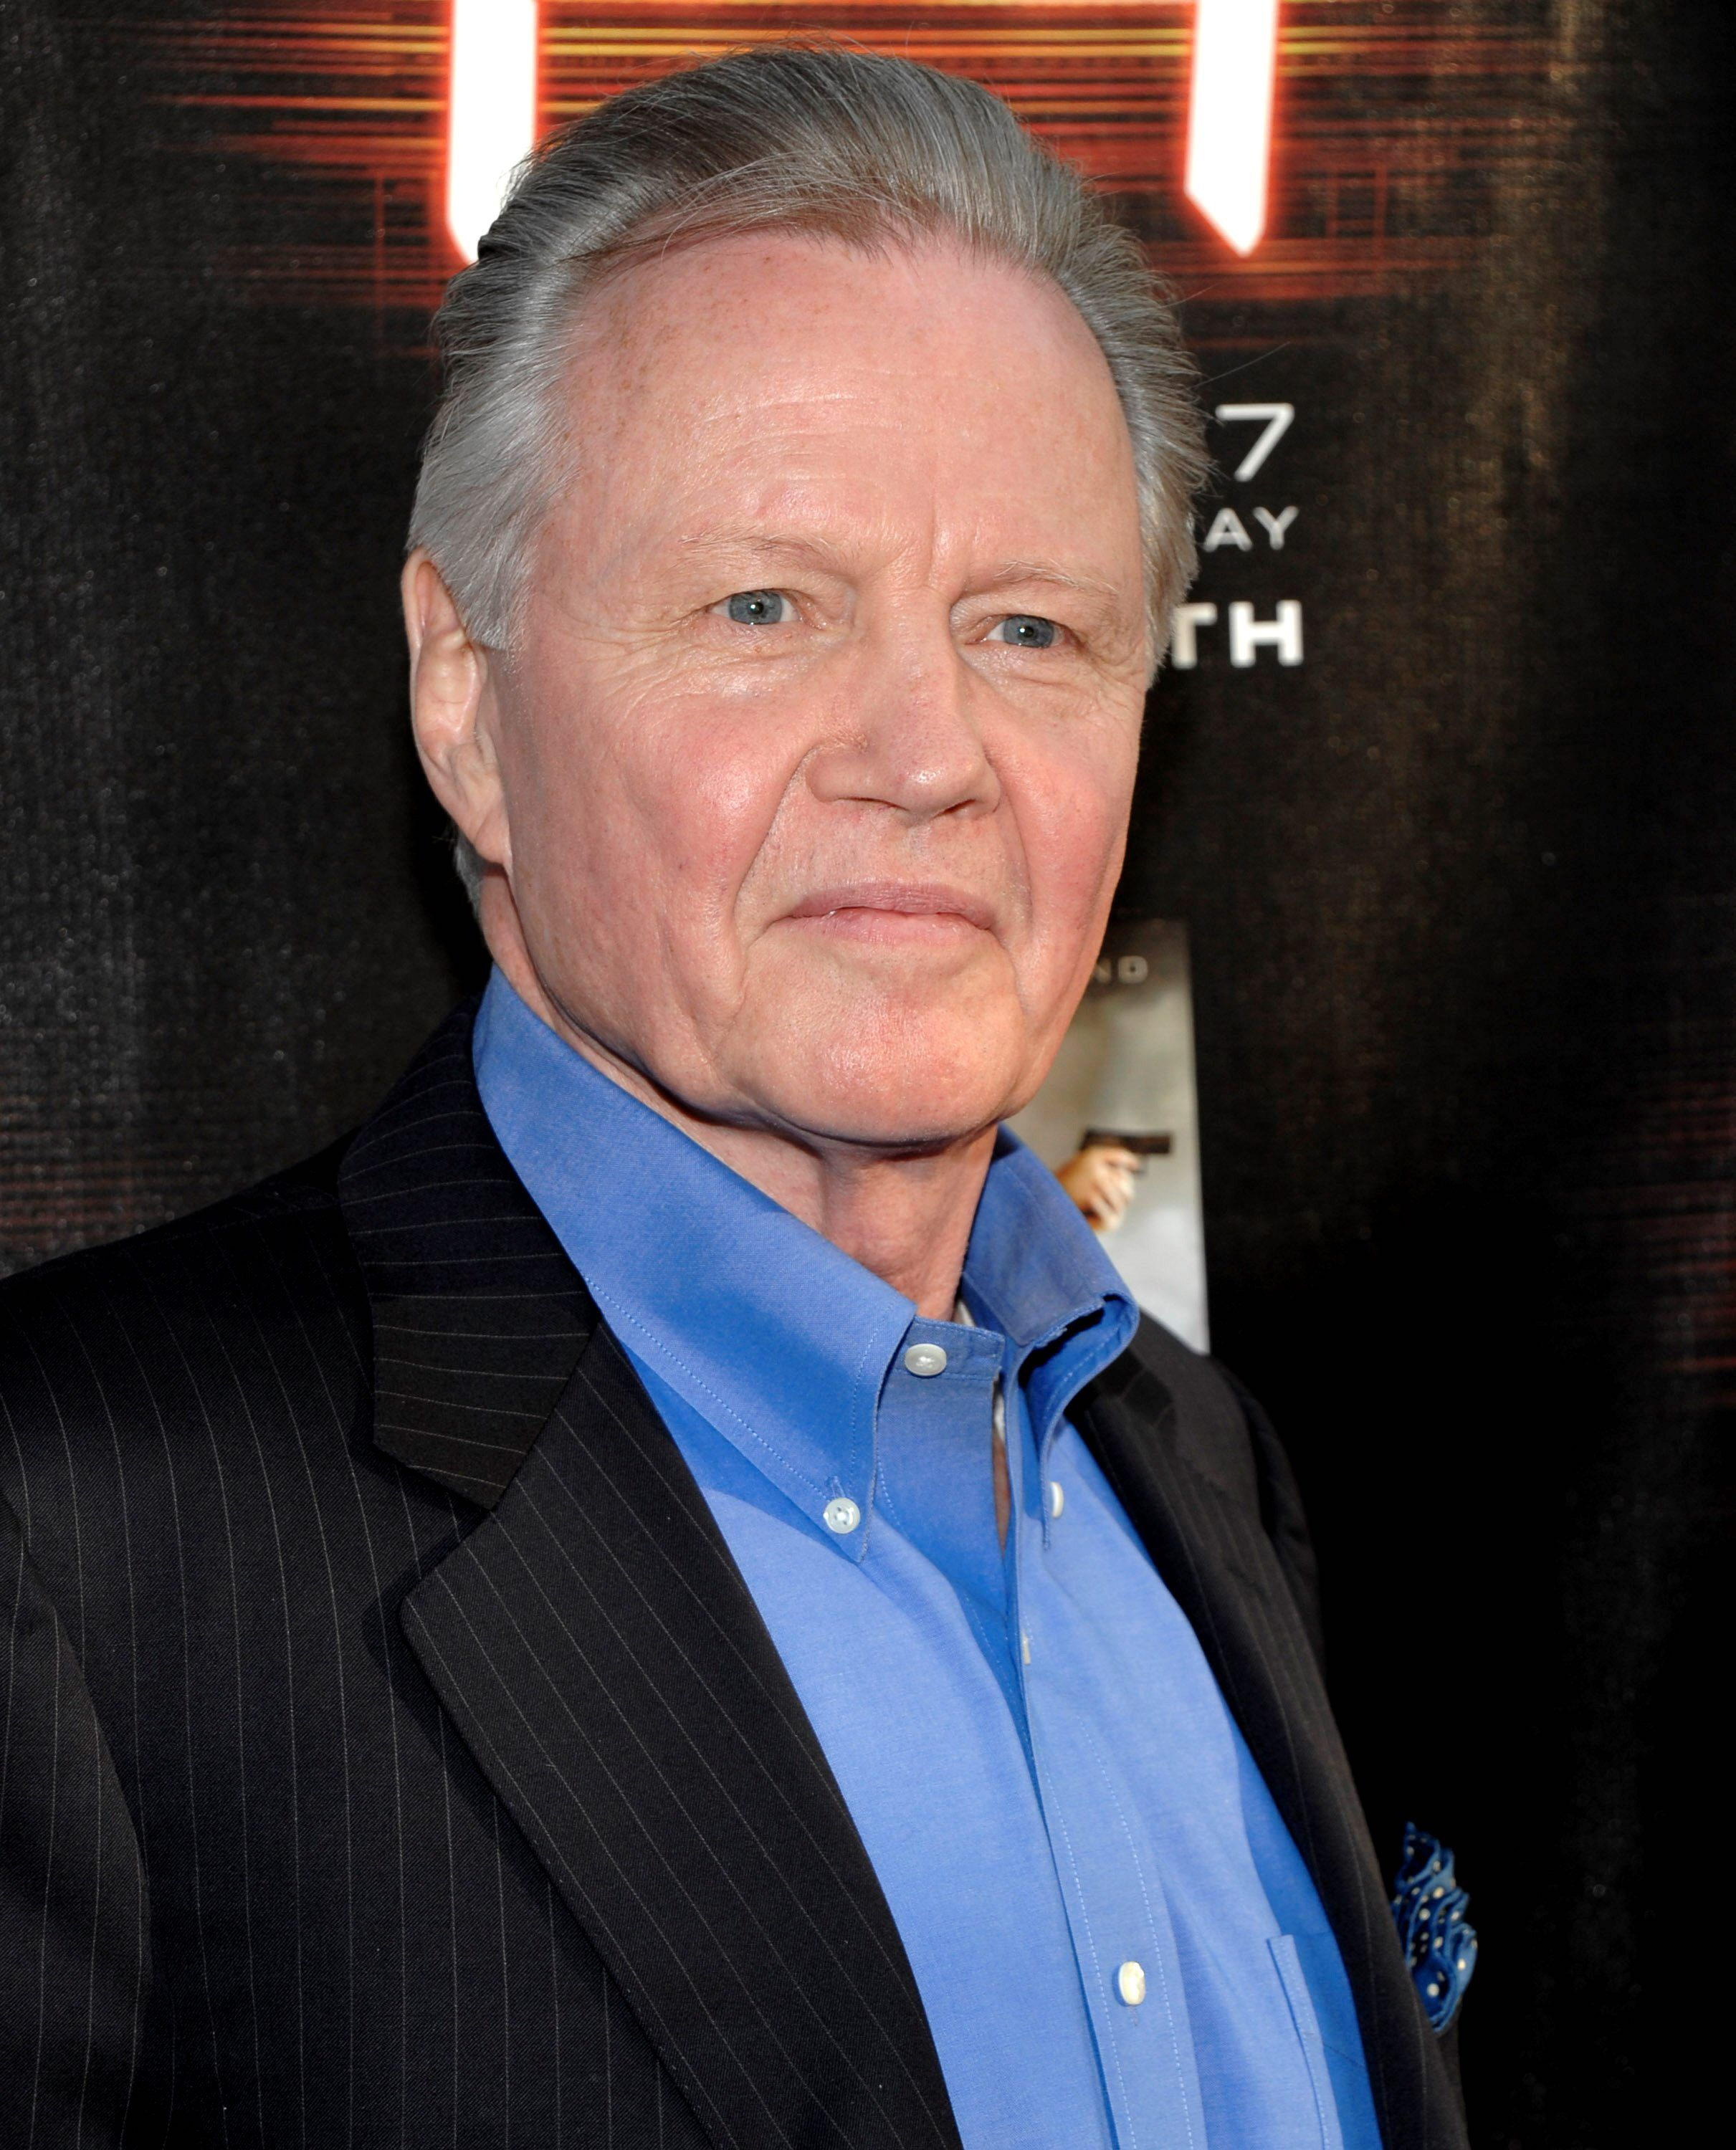 Jon Voight An open letter to President Obama from Jon Voight